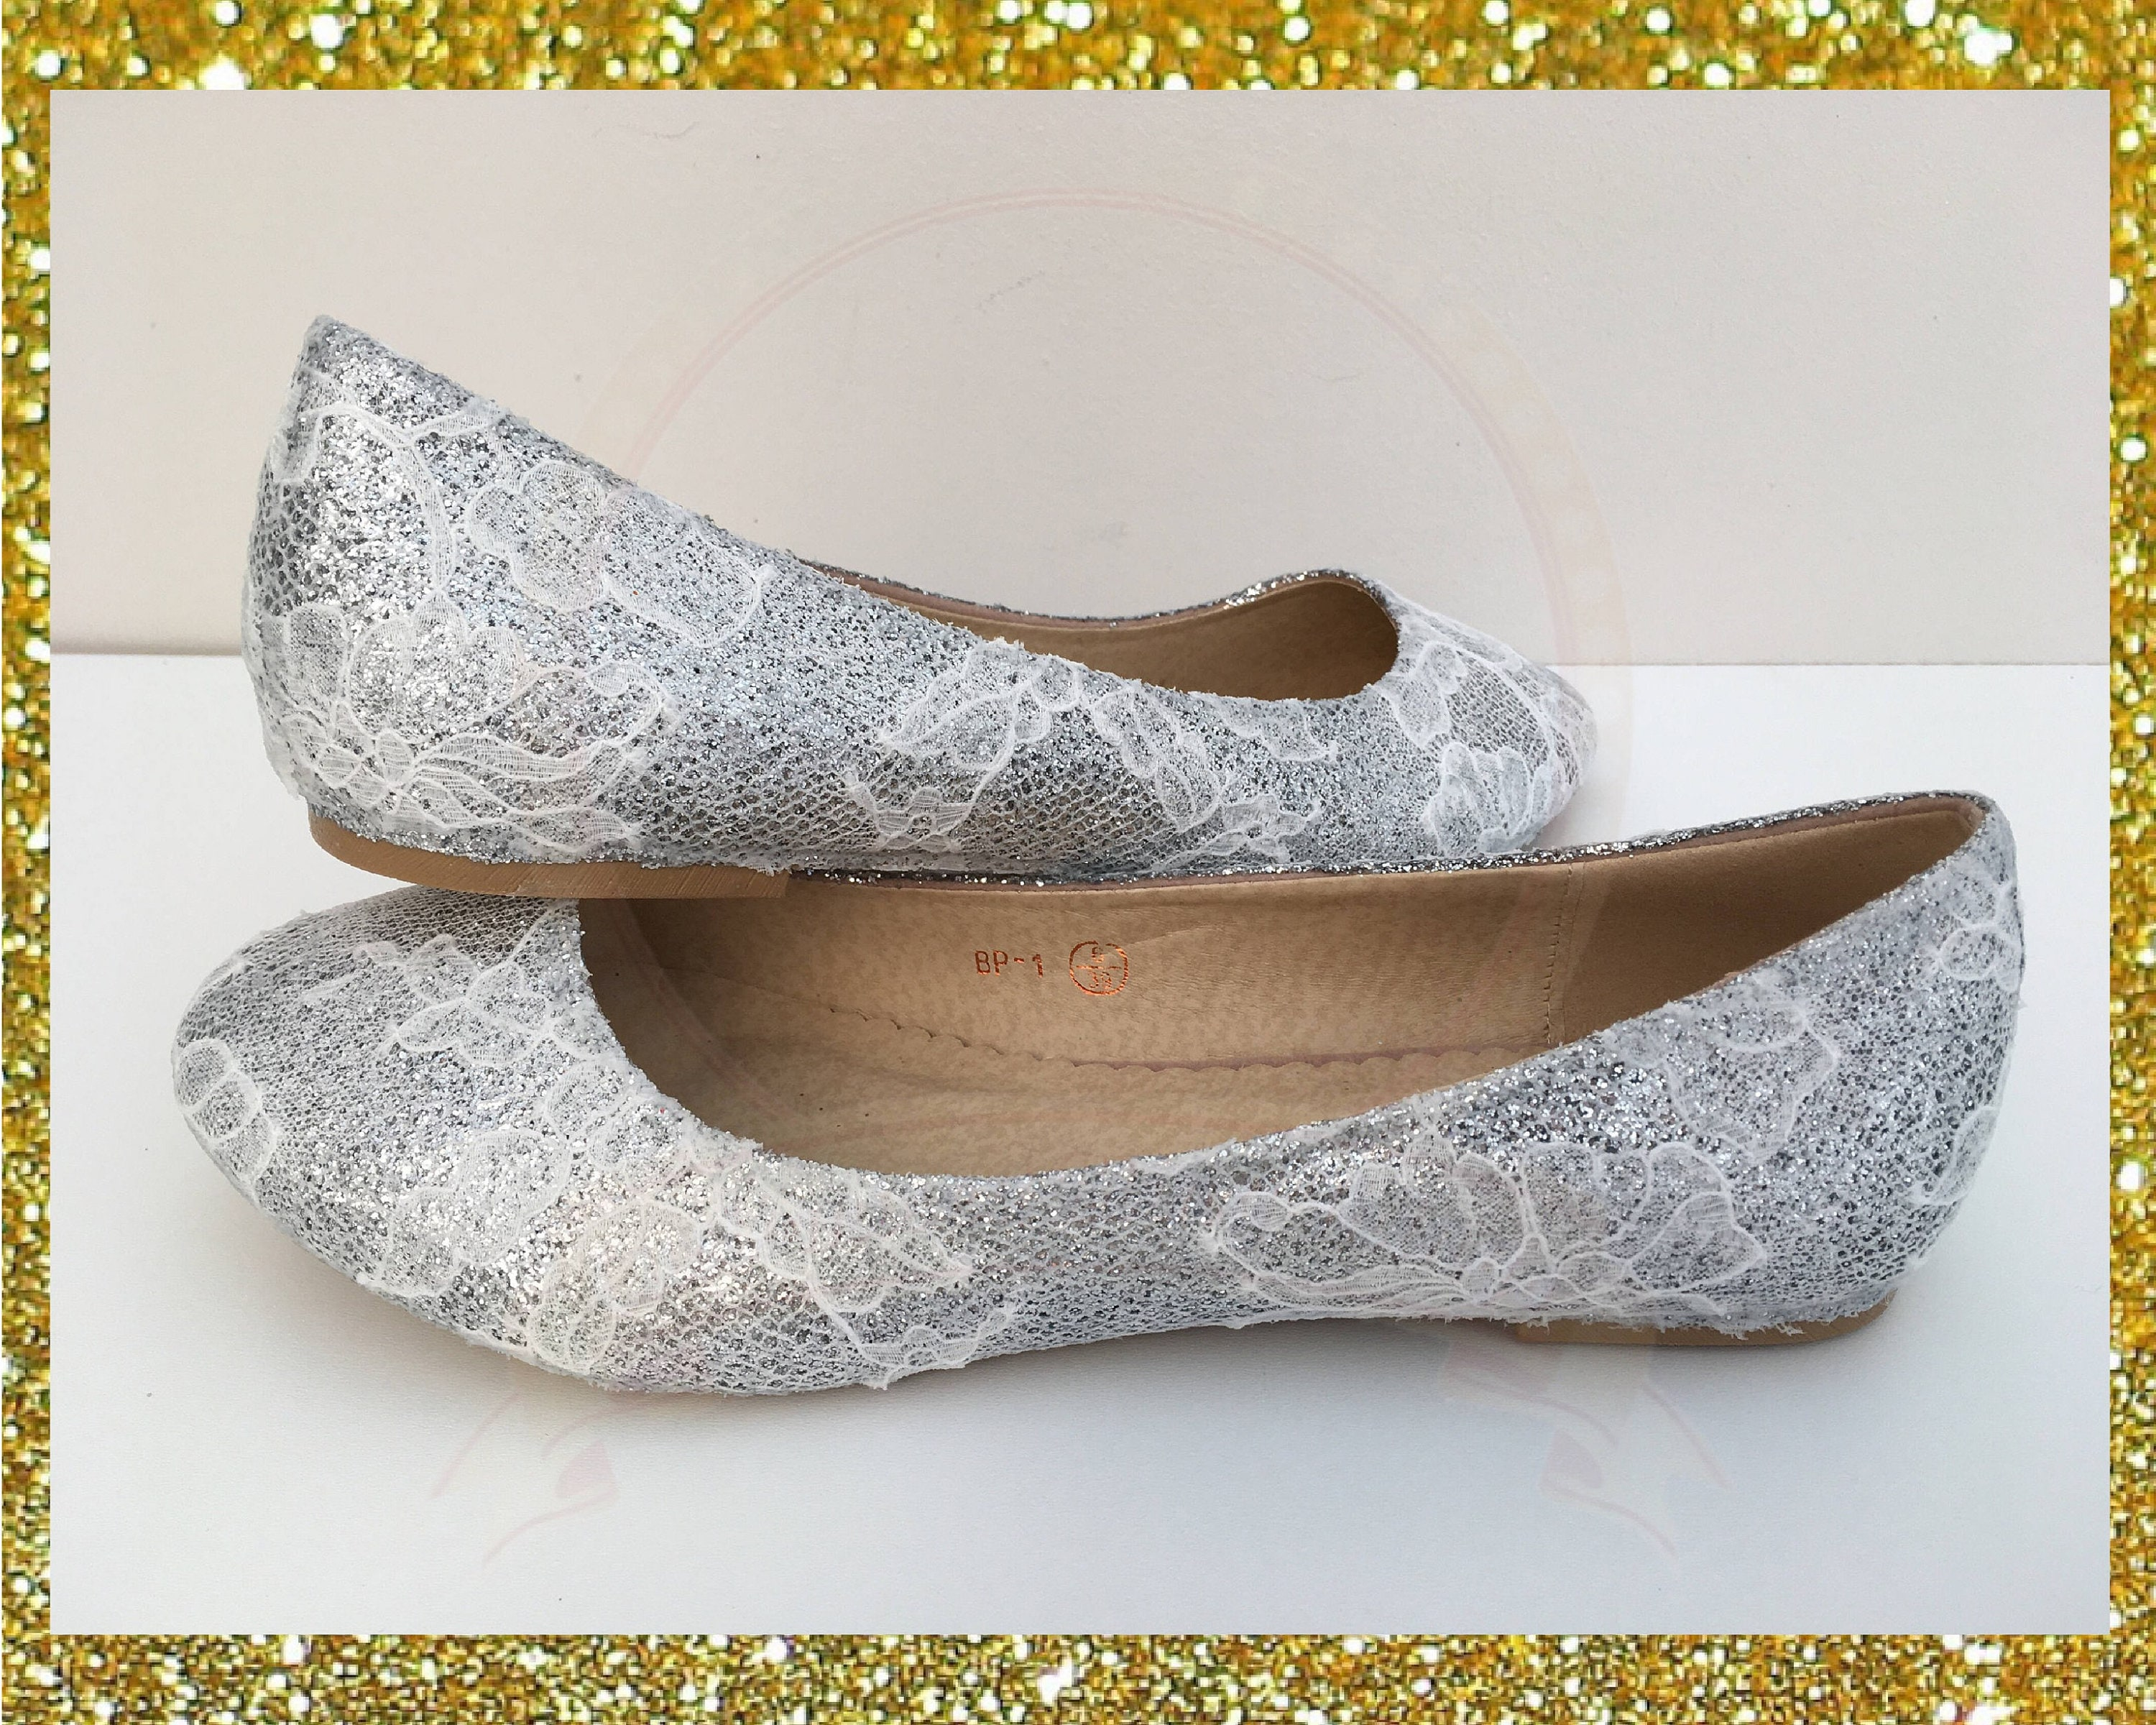 479c156325077 Silver glitter and lace shoes, Silver glitter shoes, Lace bridal shoes,  Glitter and lace flats, Glitter ballerina flats, Silver bridal shoes